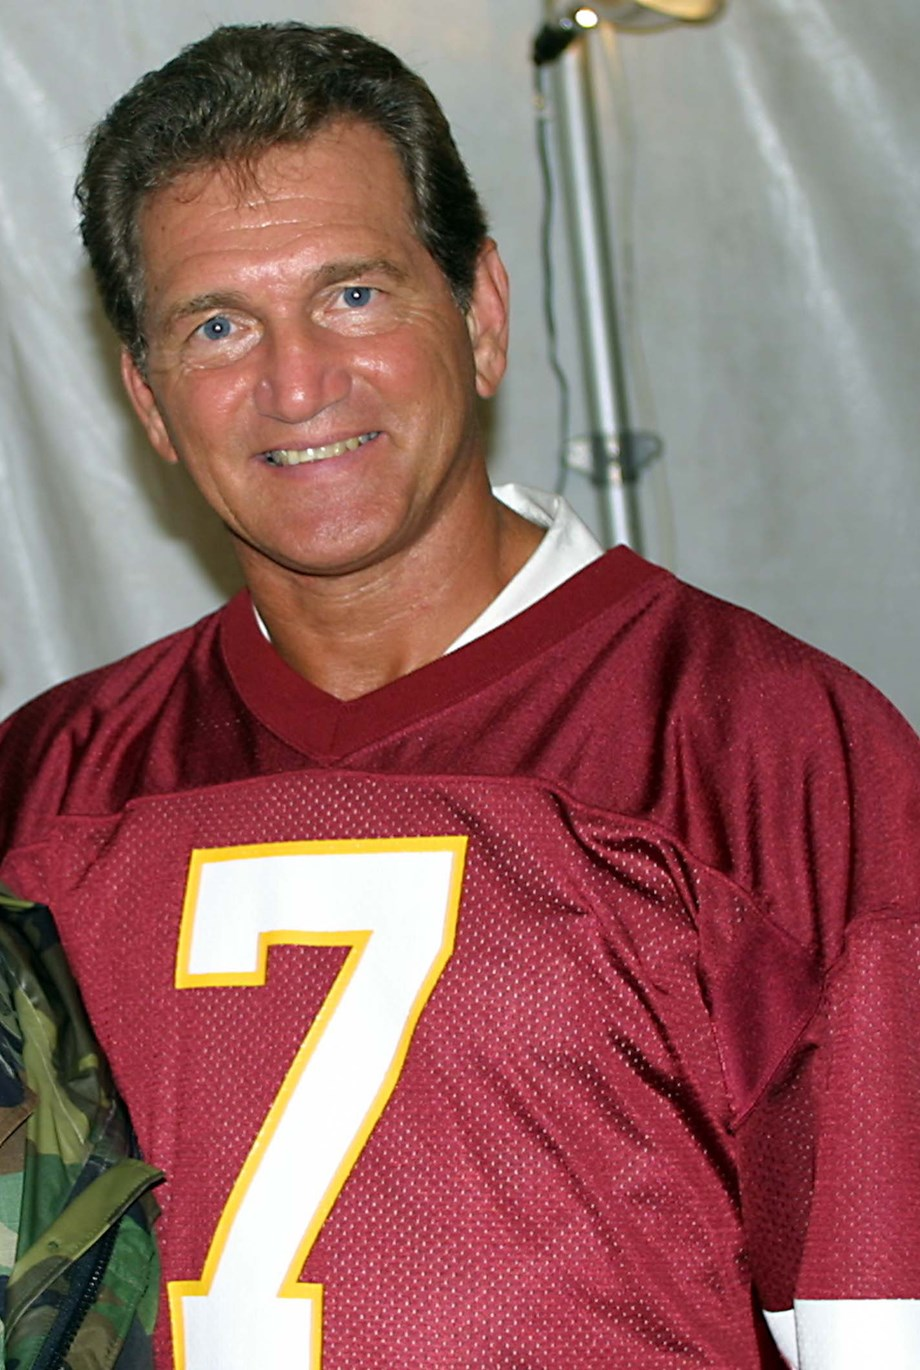 9e1bb985a Redskins  Haskins gets blessings from Theismann to wear jersey No. 7 ...